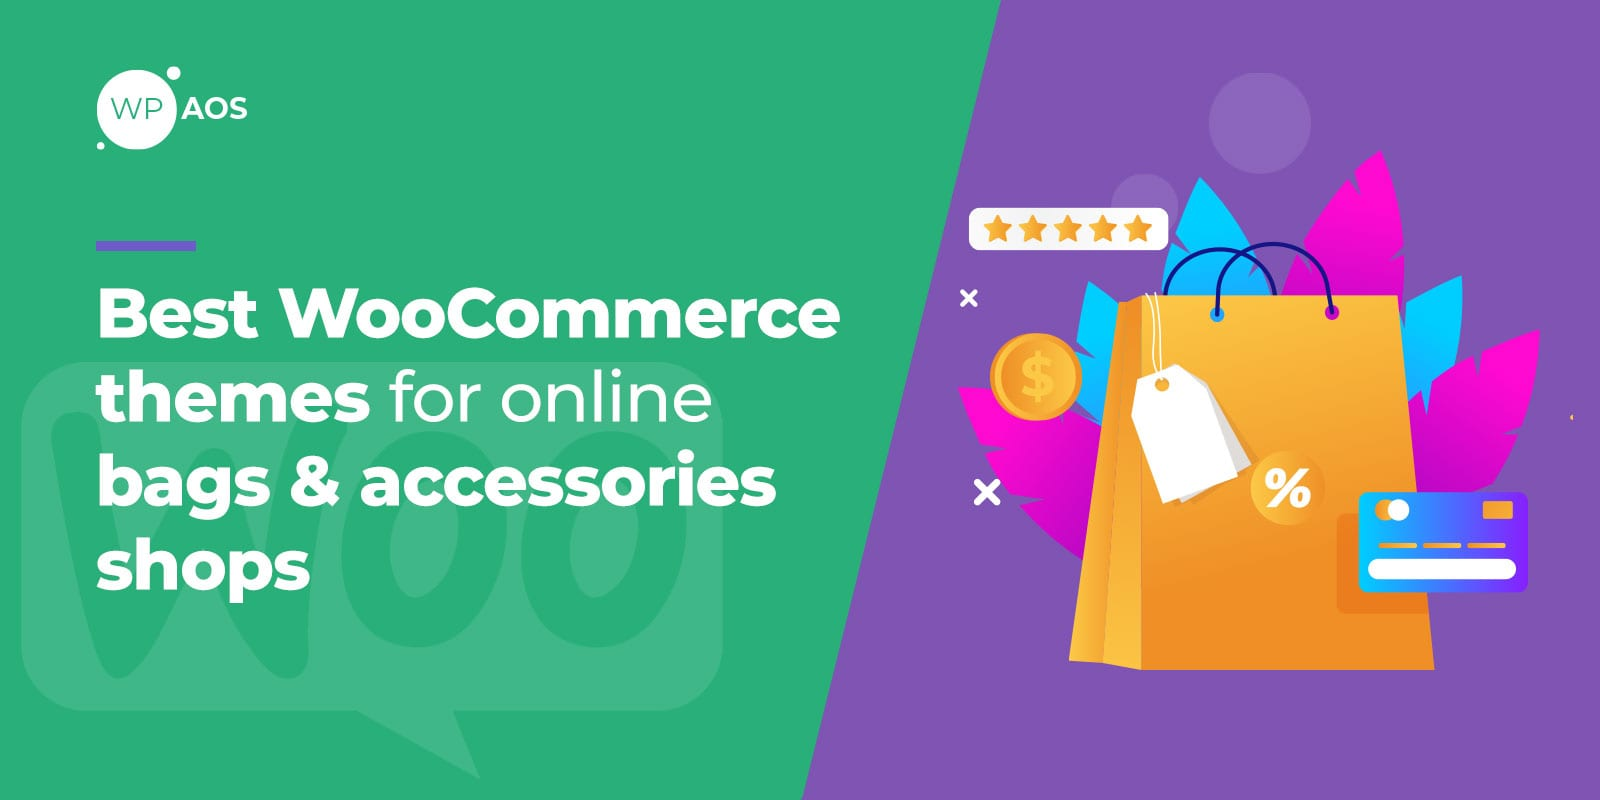 Best WooCommerce Themes For Online Bags Accessories Shops, wpaos